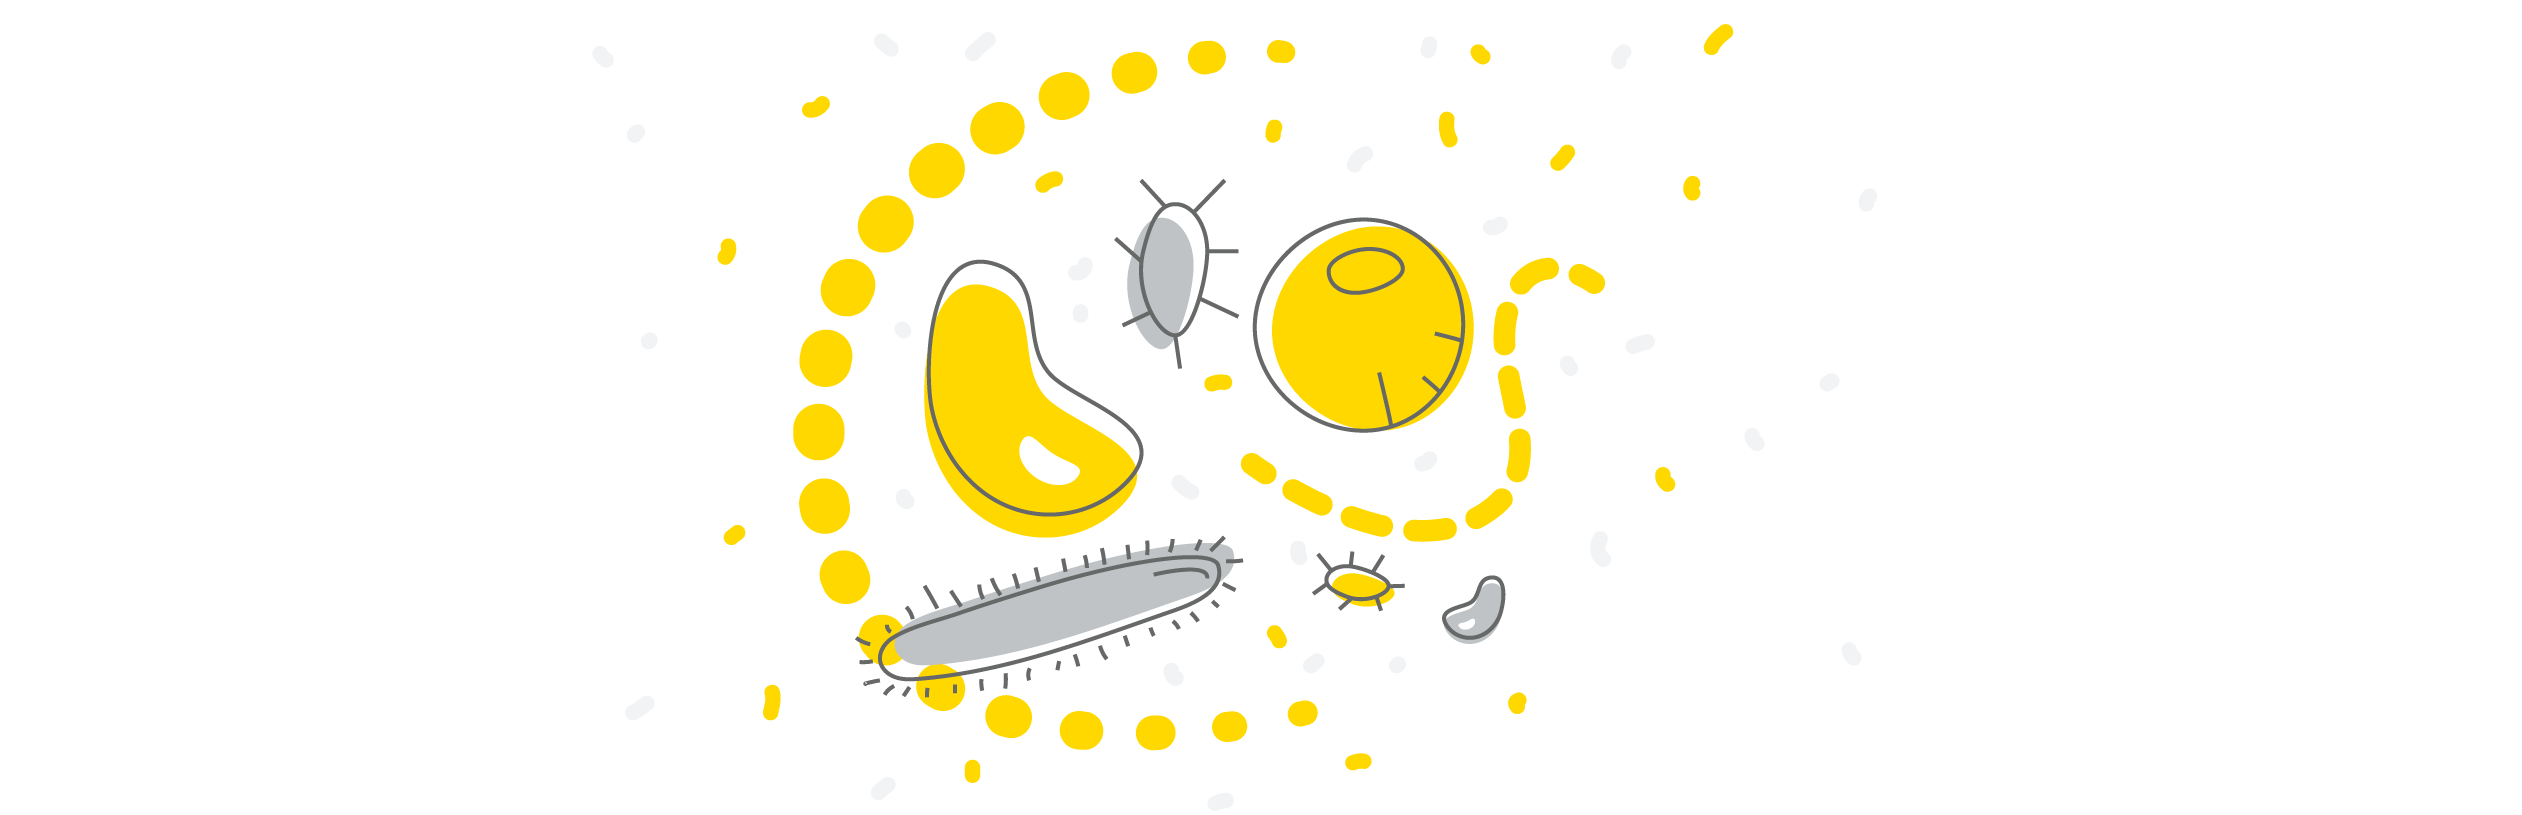 Microbiome Analysis with KNIME Analytics Platform